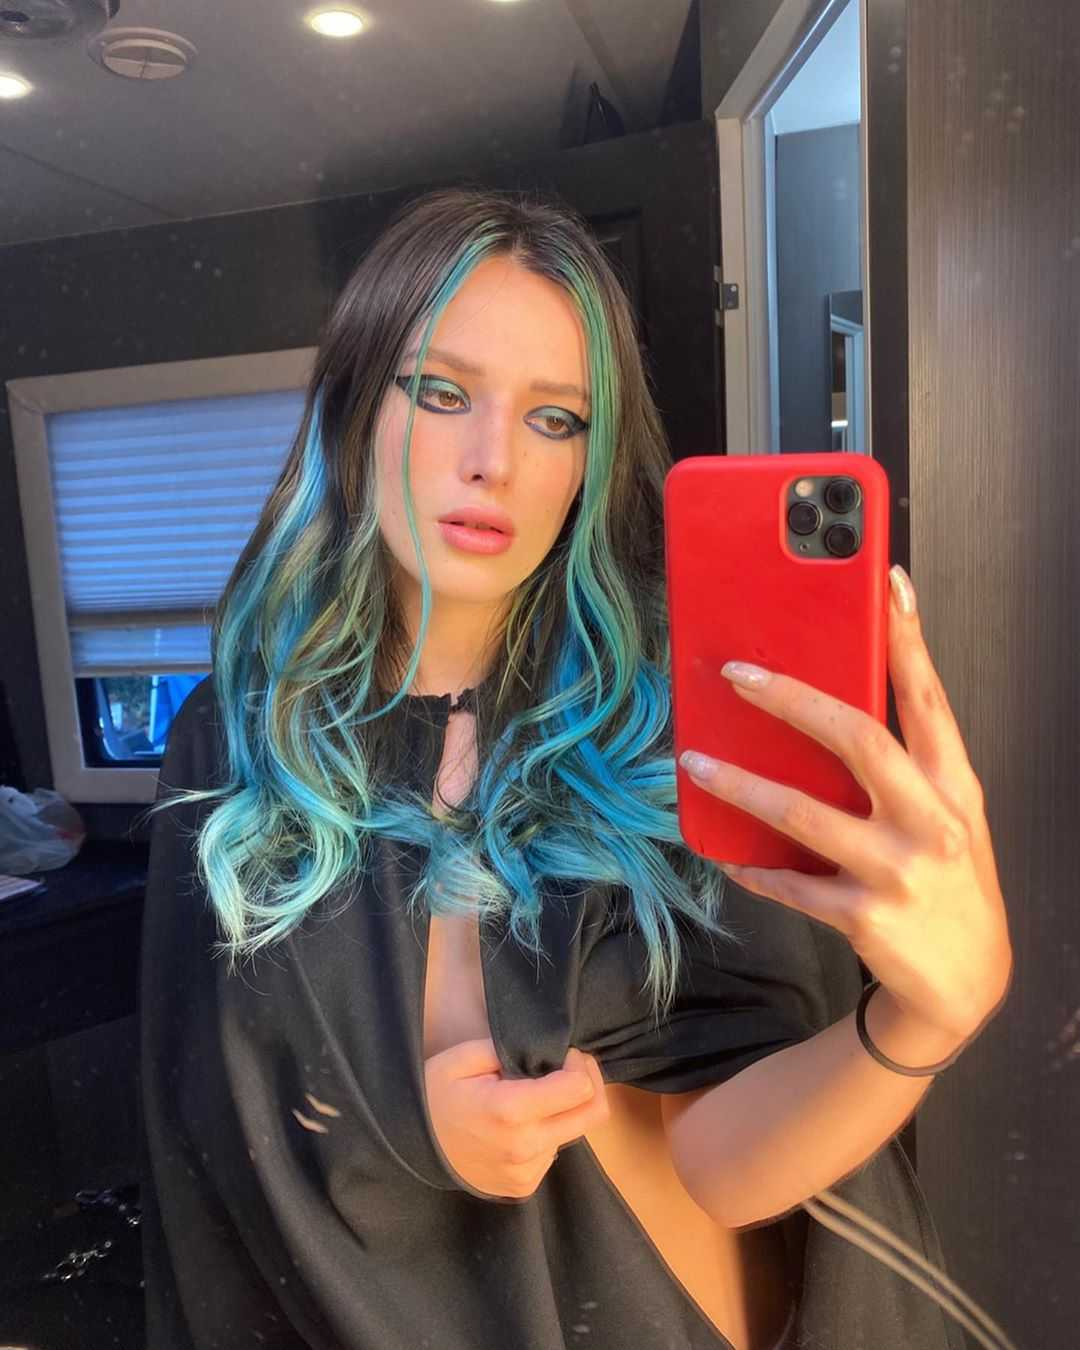 70 Hot Pictures Of Bella Thorne - One Of The Most Beautiful Actress Of Our Generation-7145